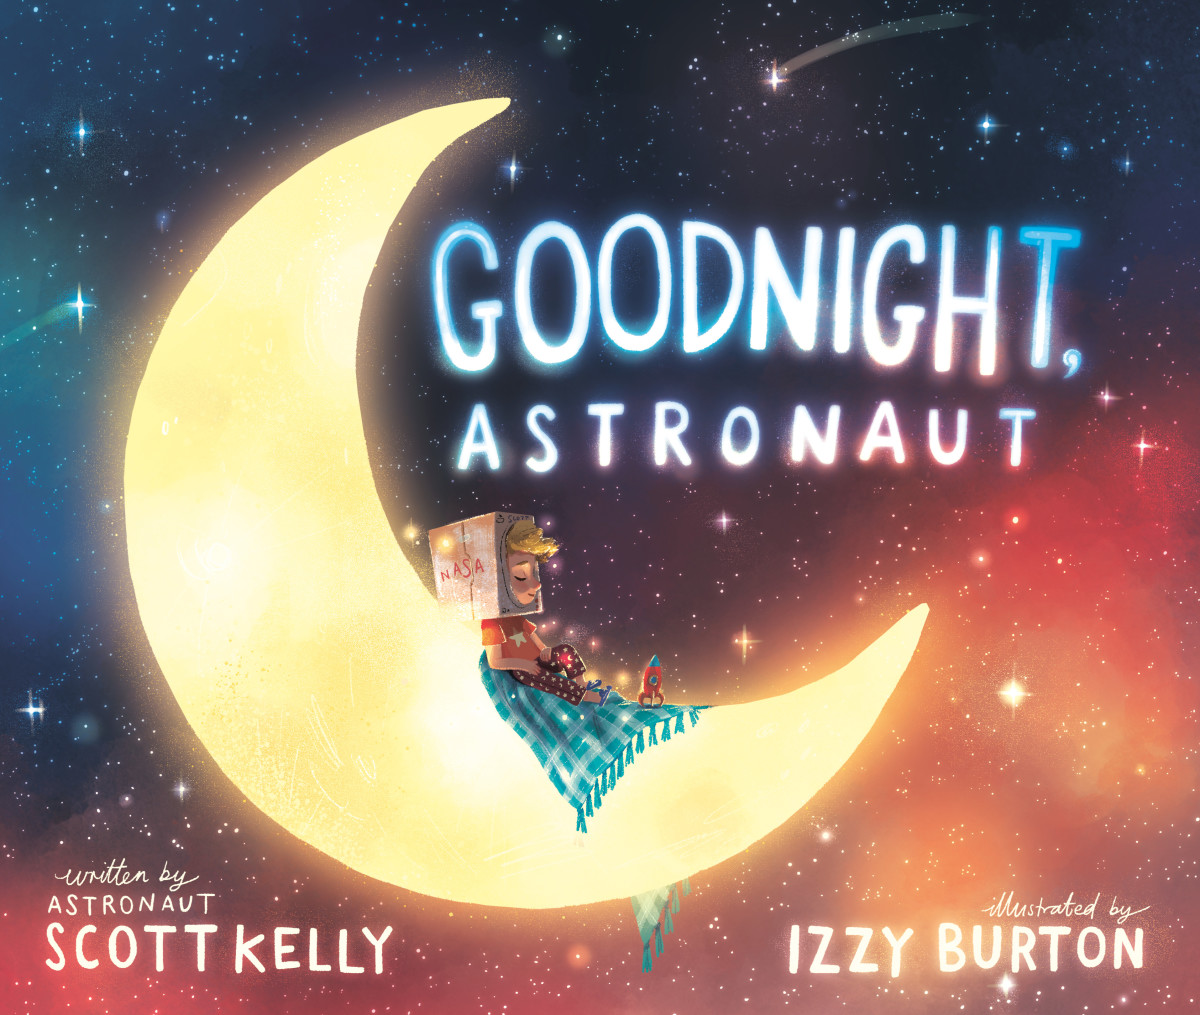 Fall asleep with an astronaut and his adventures in new bedtime story